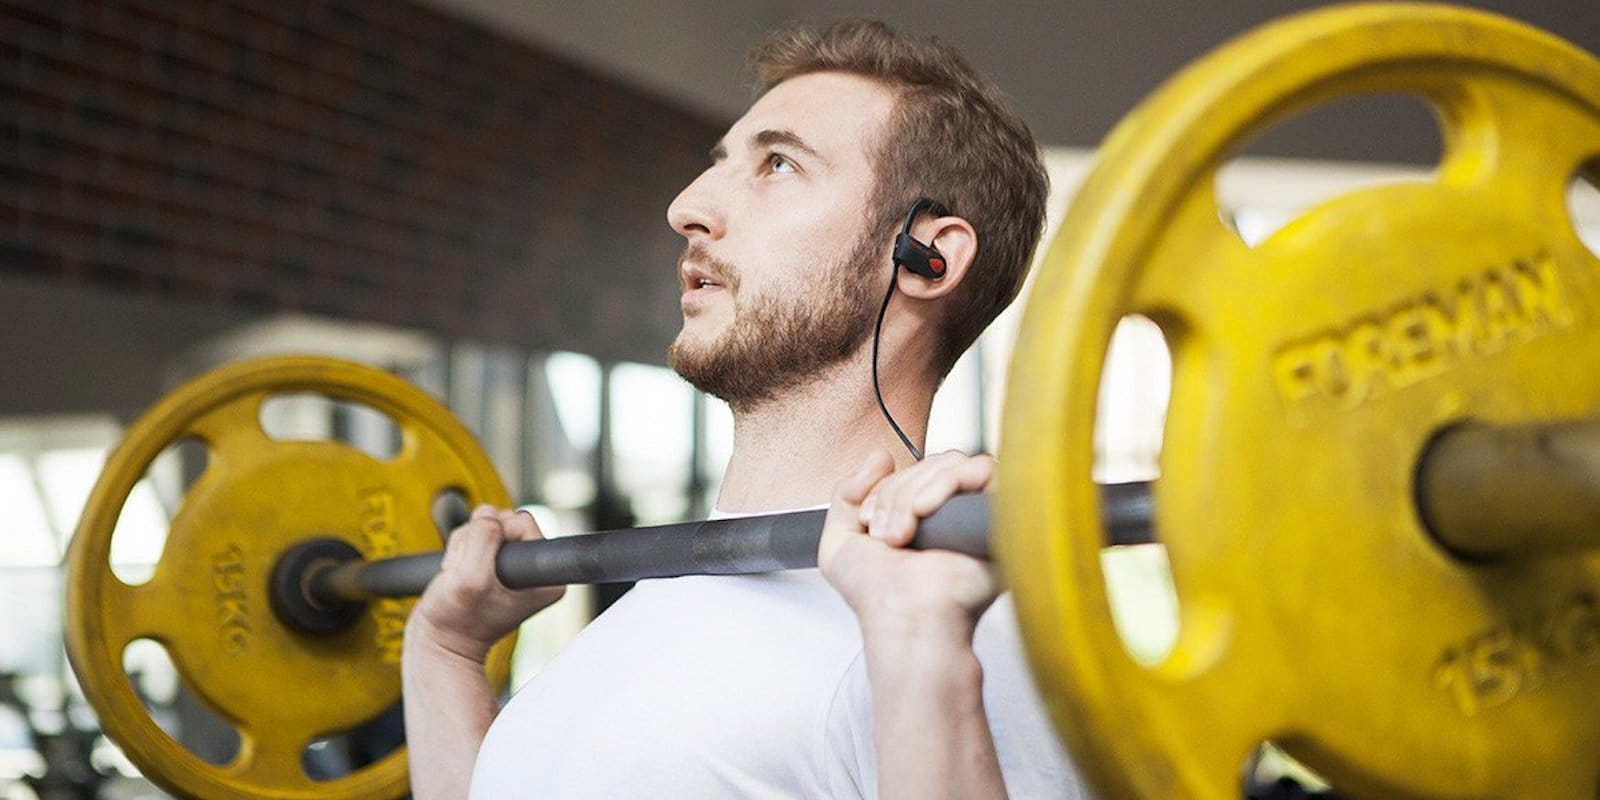 These Bluetooth earbuds are designed to withstand even the toughest workouts.